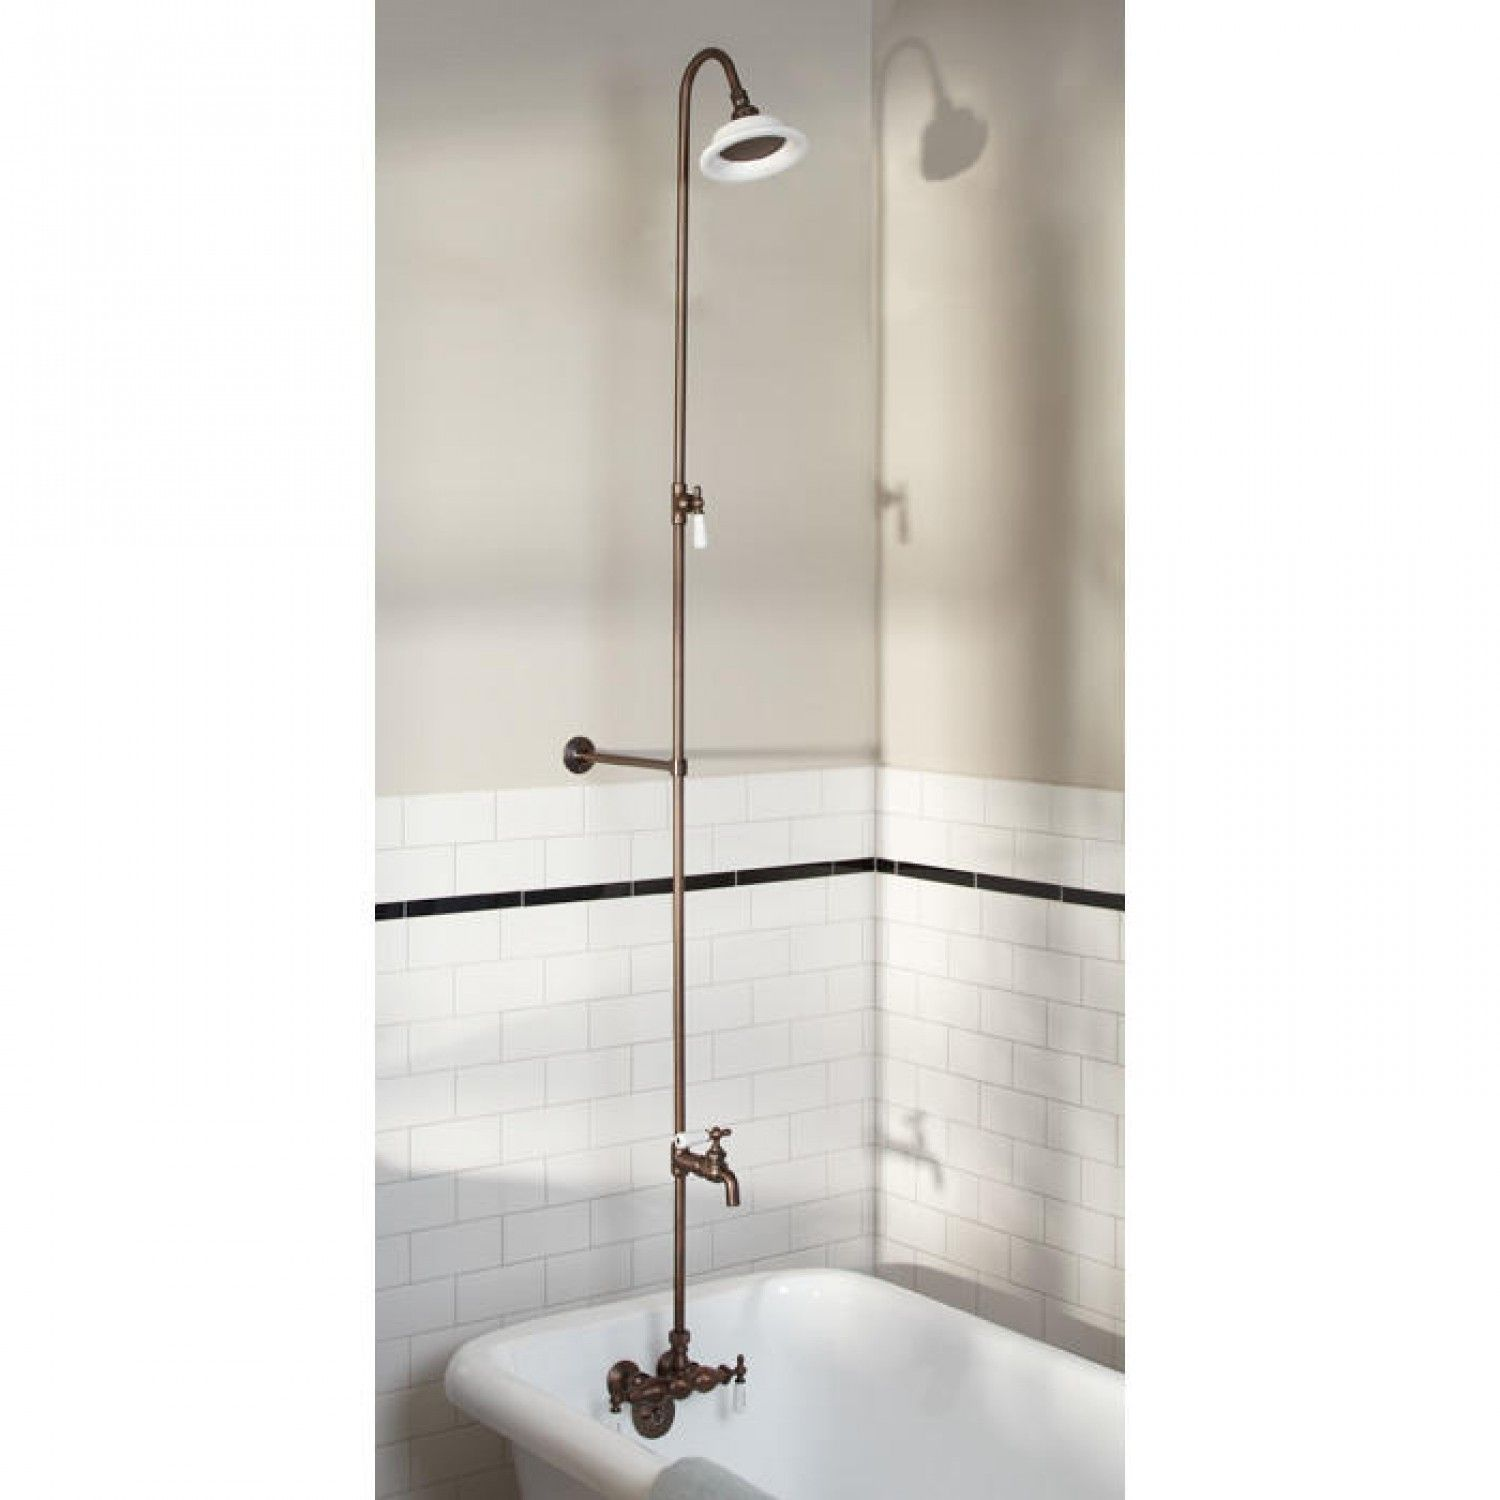 Bathroom shower pipe - This Exposed Pipe Shower Comes With Everything You Need Including Faucet With Cross Handles